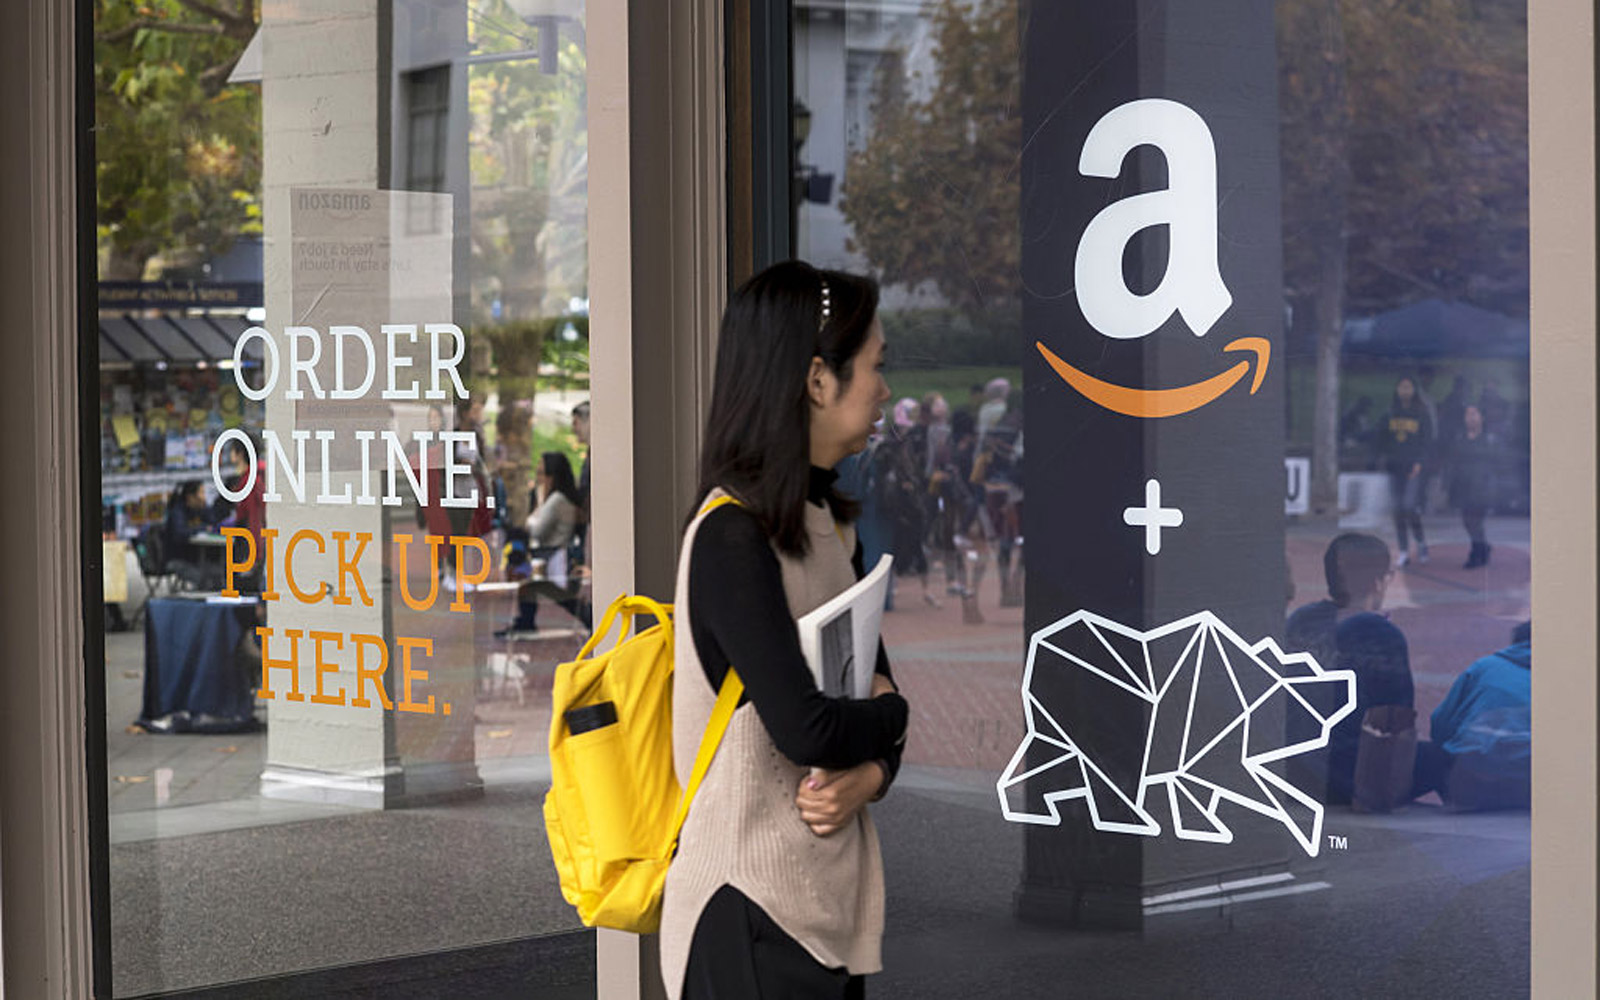 A student walks in front of an Amazon.com Inc. kiosk on the University of California, Berkeley campus in Berkeley, California, U.S., on Wednesday, Oct. 12, 2016. By the end of the year, Amazon will have staffed pickup kiosks serving more than 500,000 coll